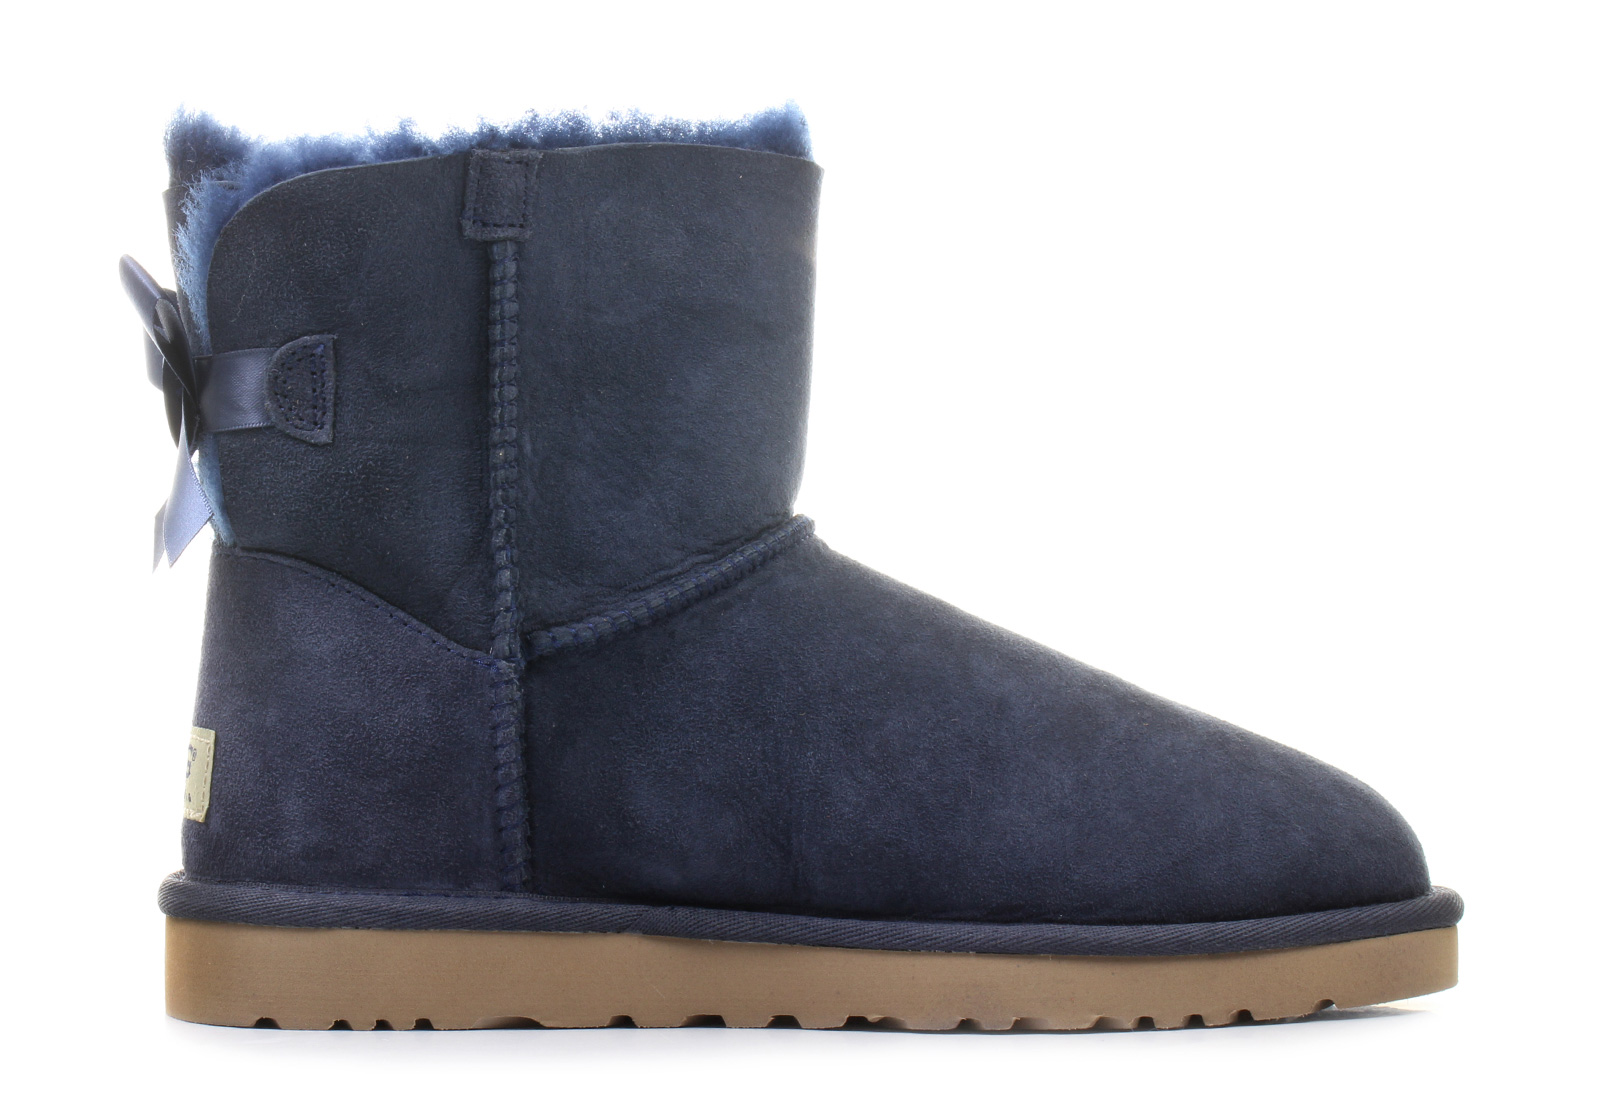 abbb7fd9a10 Ugg Boots - W Mini Bailey Bow - 1005062-NAVY - Online shop for sneakers,  shoes and boots